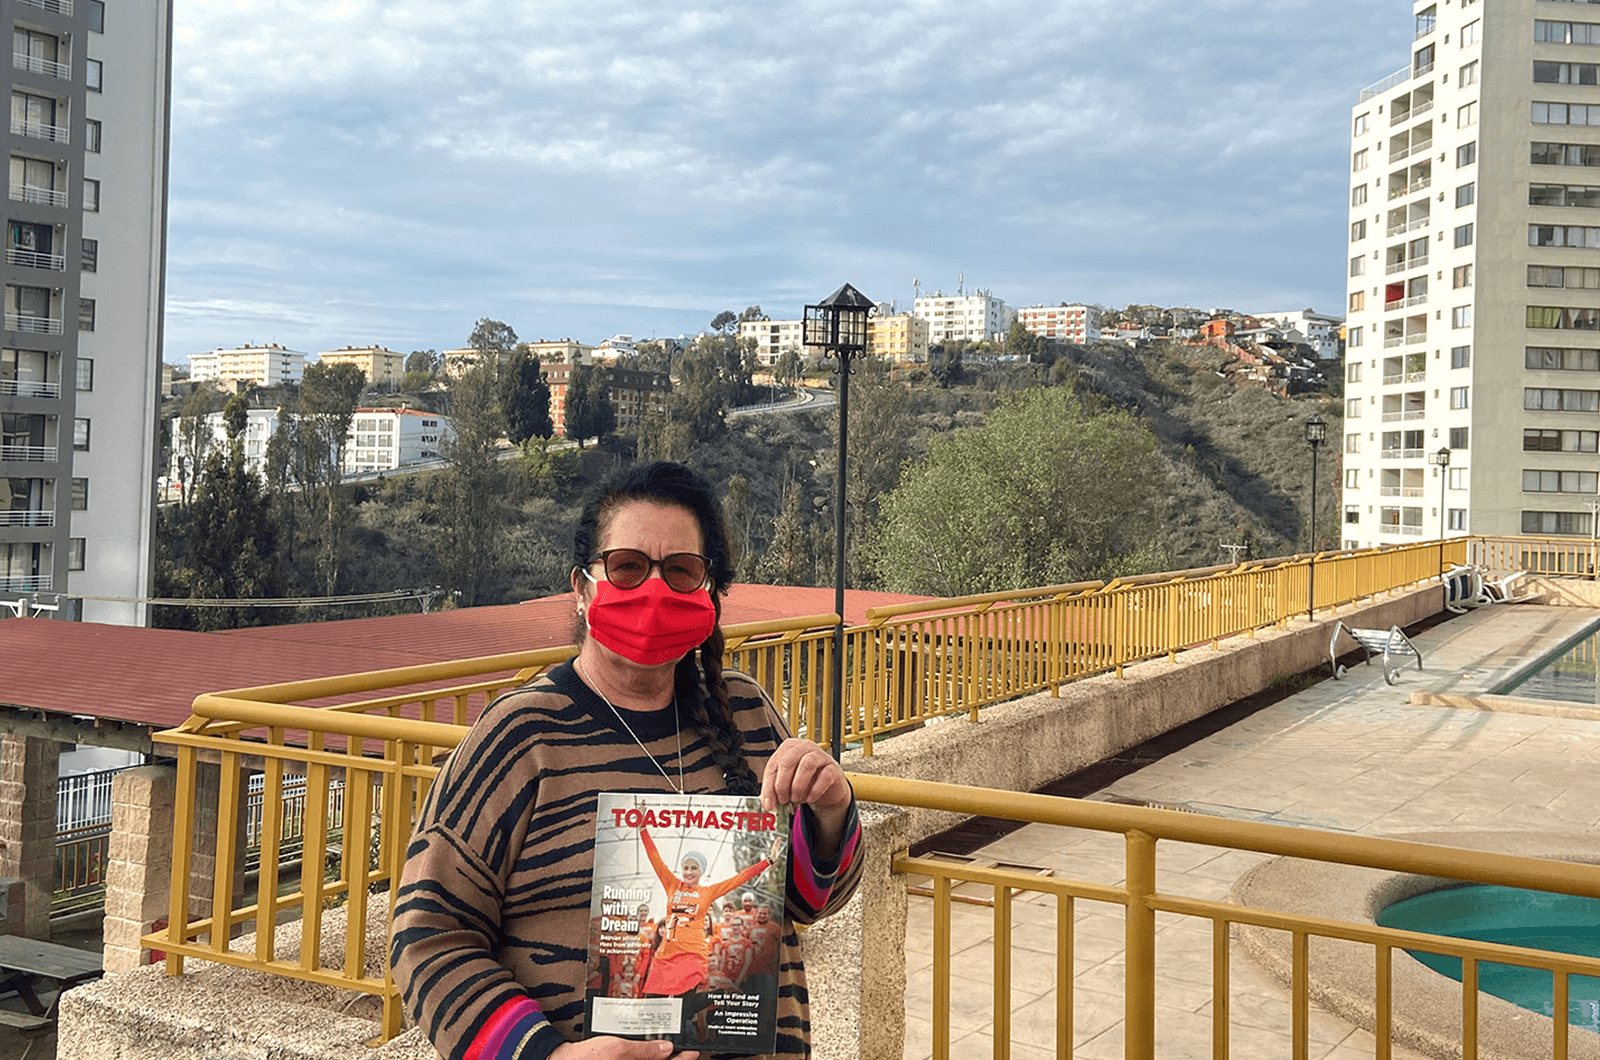 Mariana Carrasco of Parlin, New Jersey, is thankful she could get some entertainment from her Toastmaster while quarantining in Valparaiso, Chile, after her flight home was canceled.